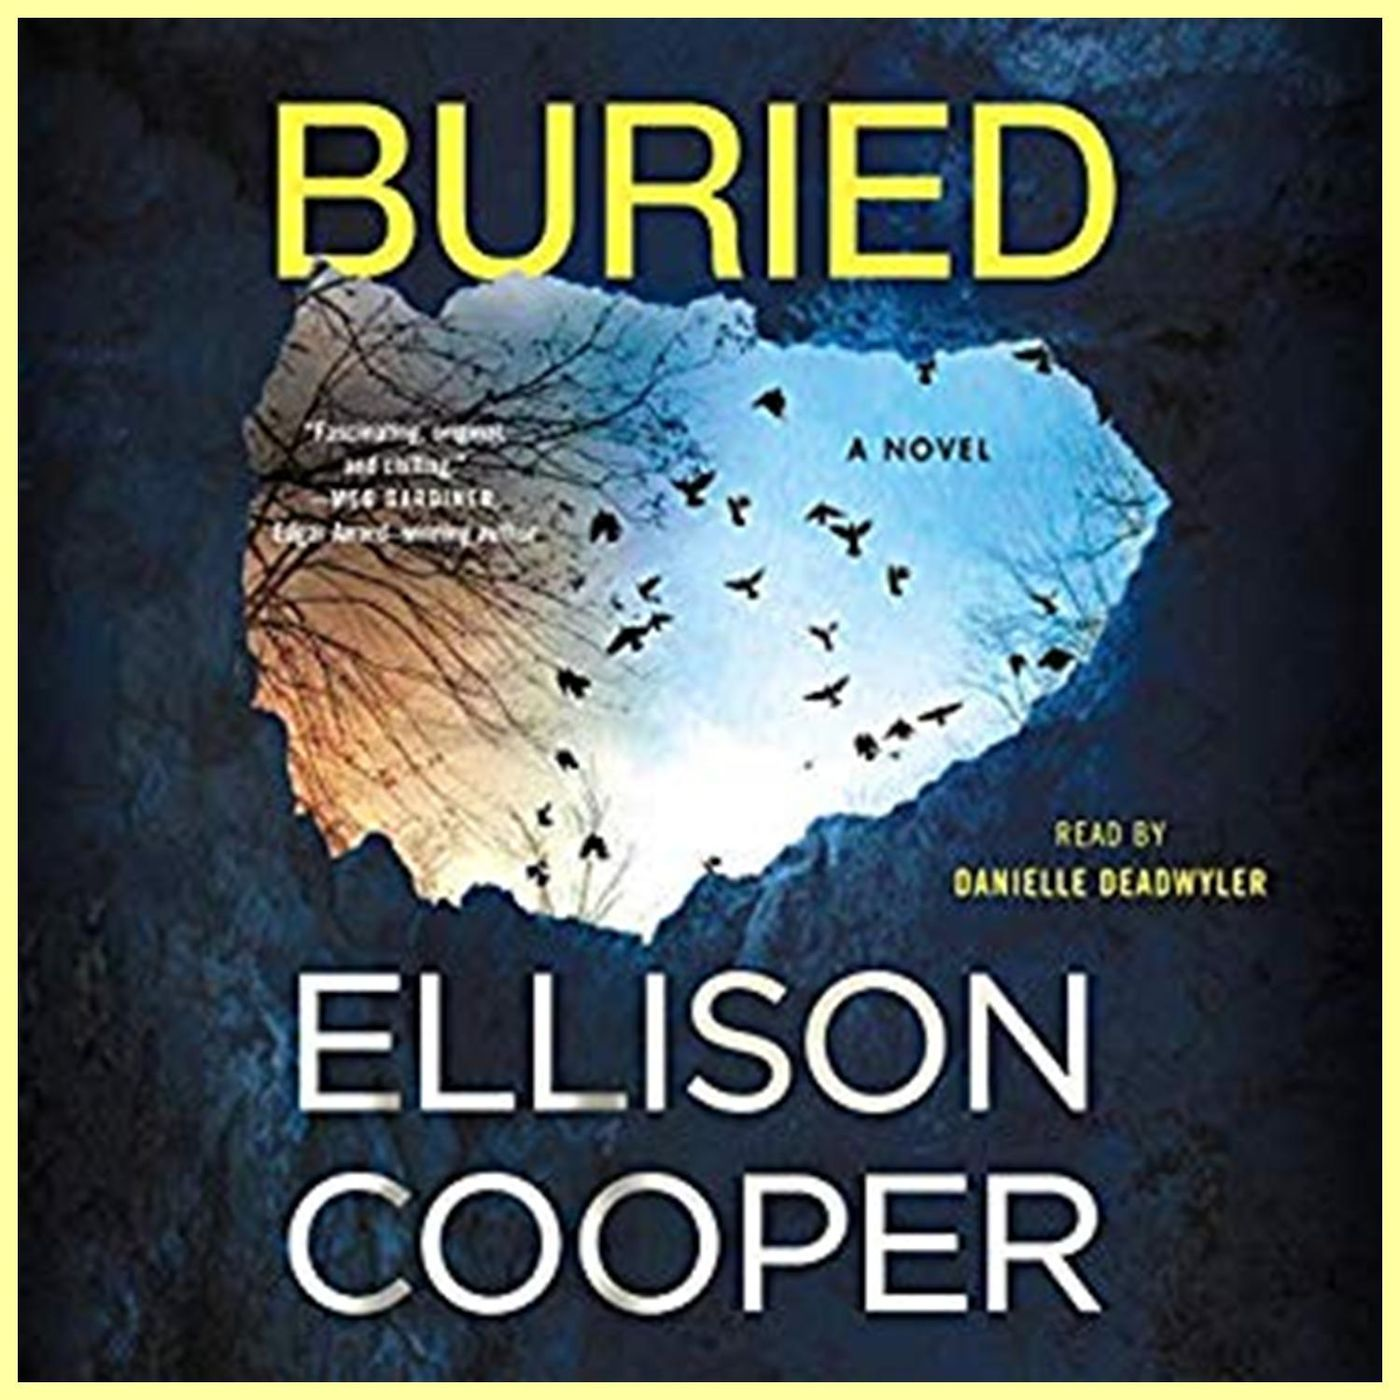 ELLISON COOPER - Buried